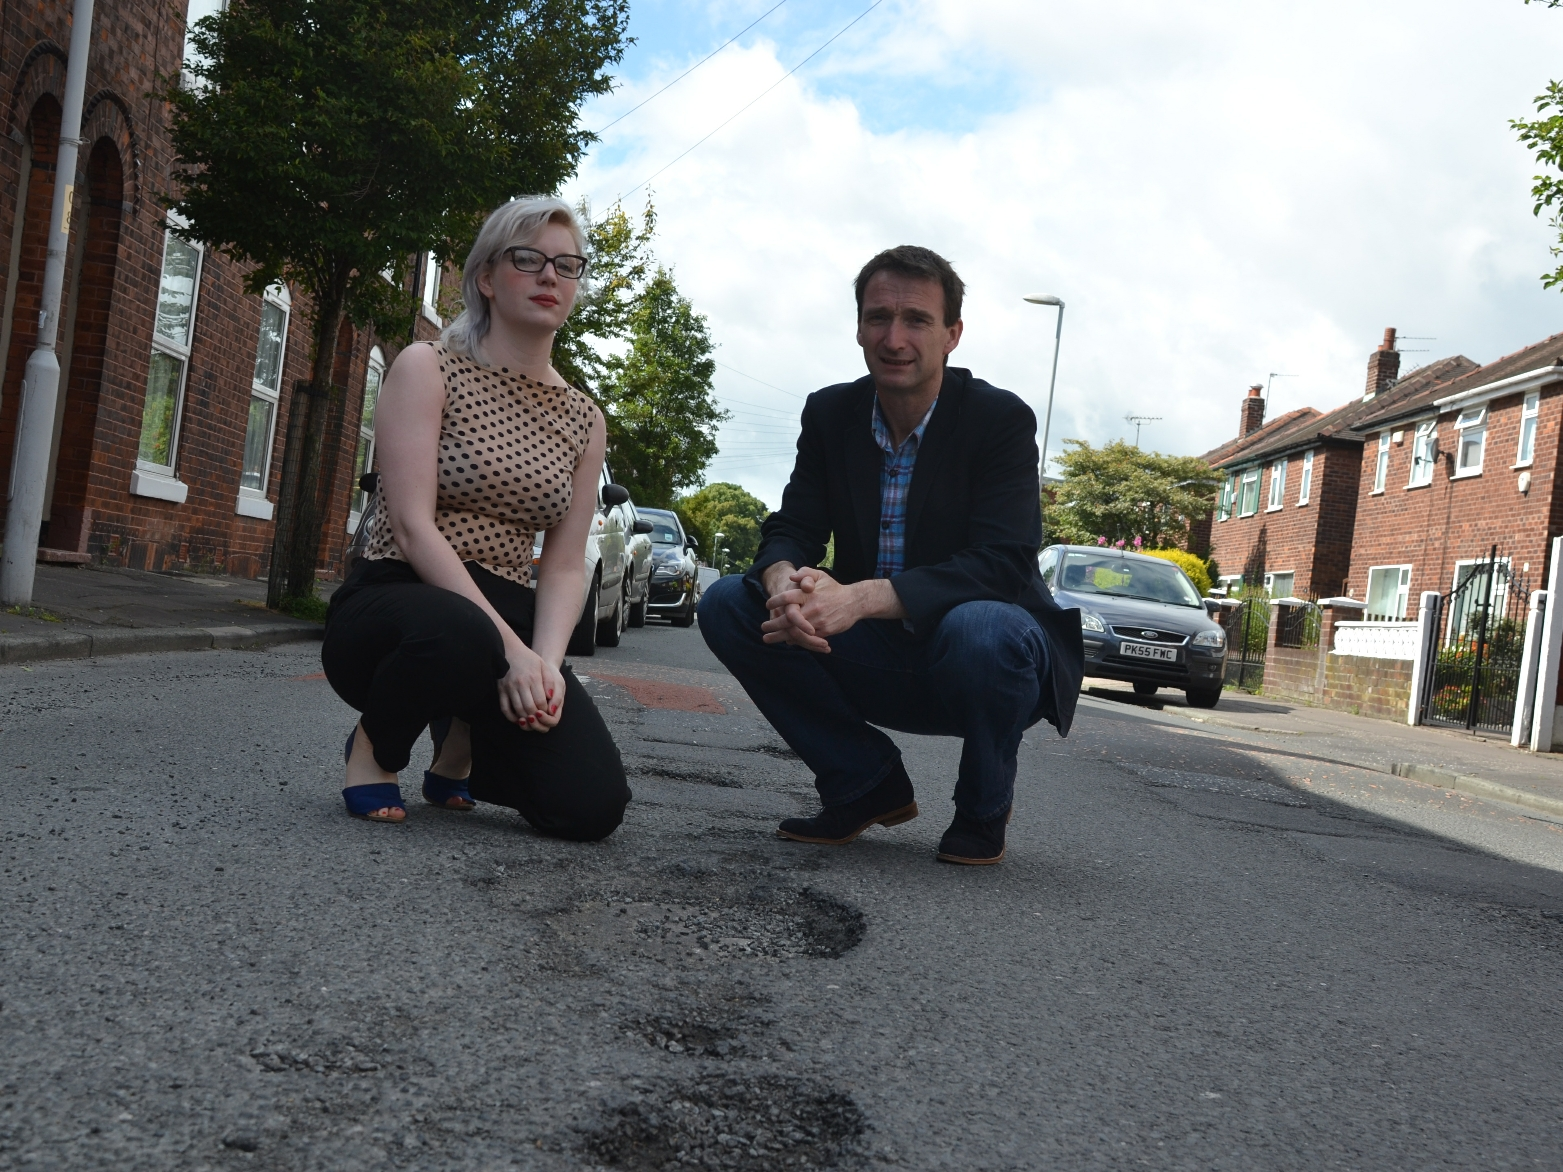 LDHQ Regional Template: Councils pay out thousands of pounds for pothole damage